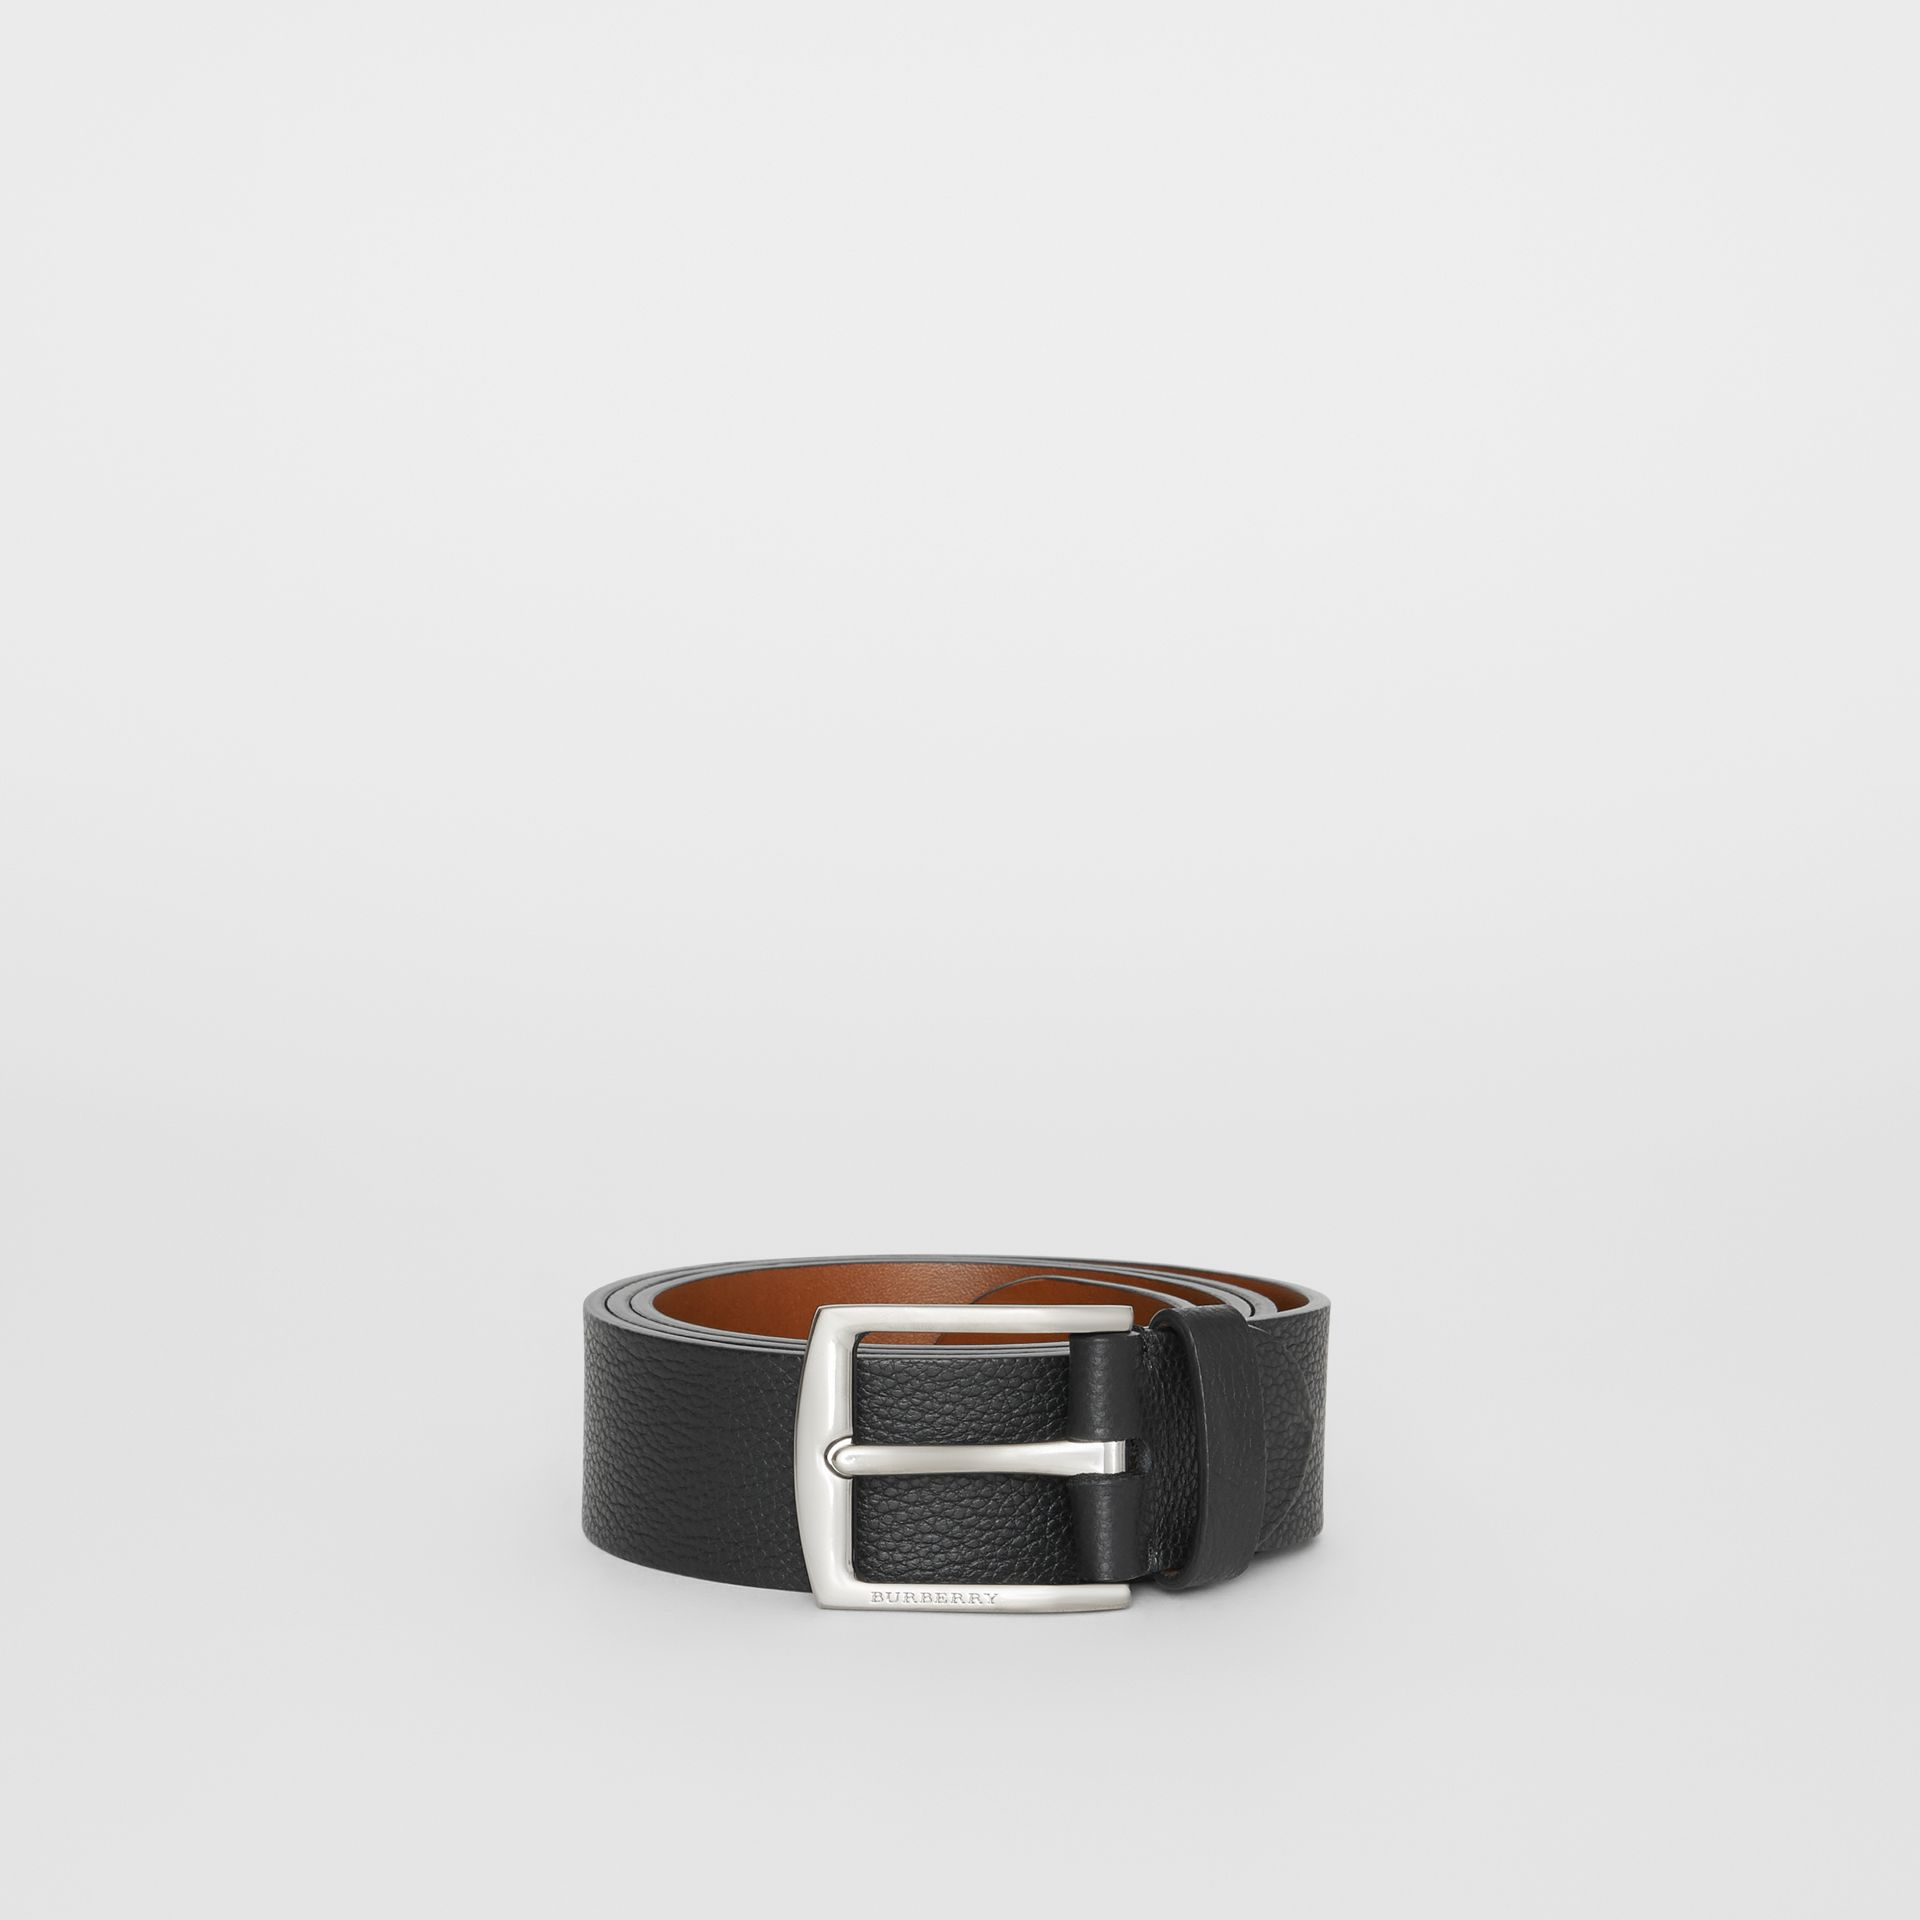 Grainy Leather Belt in Black - Men | Burberry United States - gallery image 3